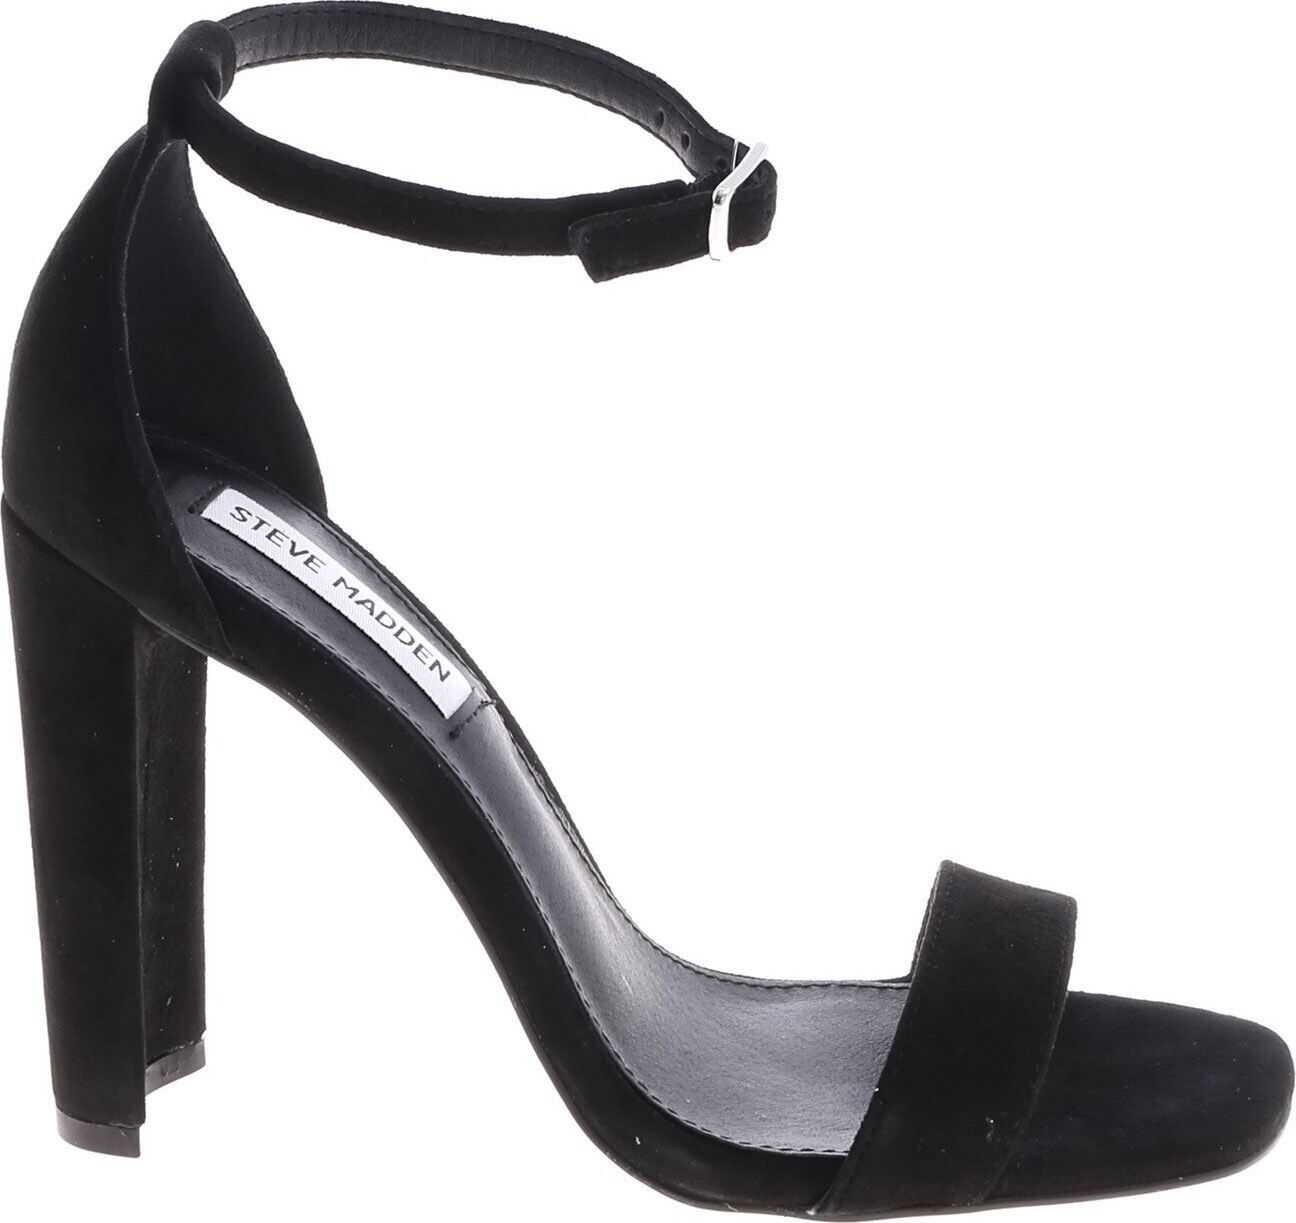 Steve Madden Franky Sandals In Black Black